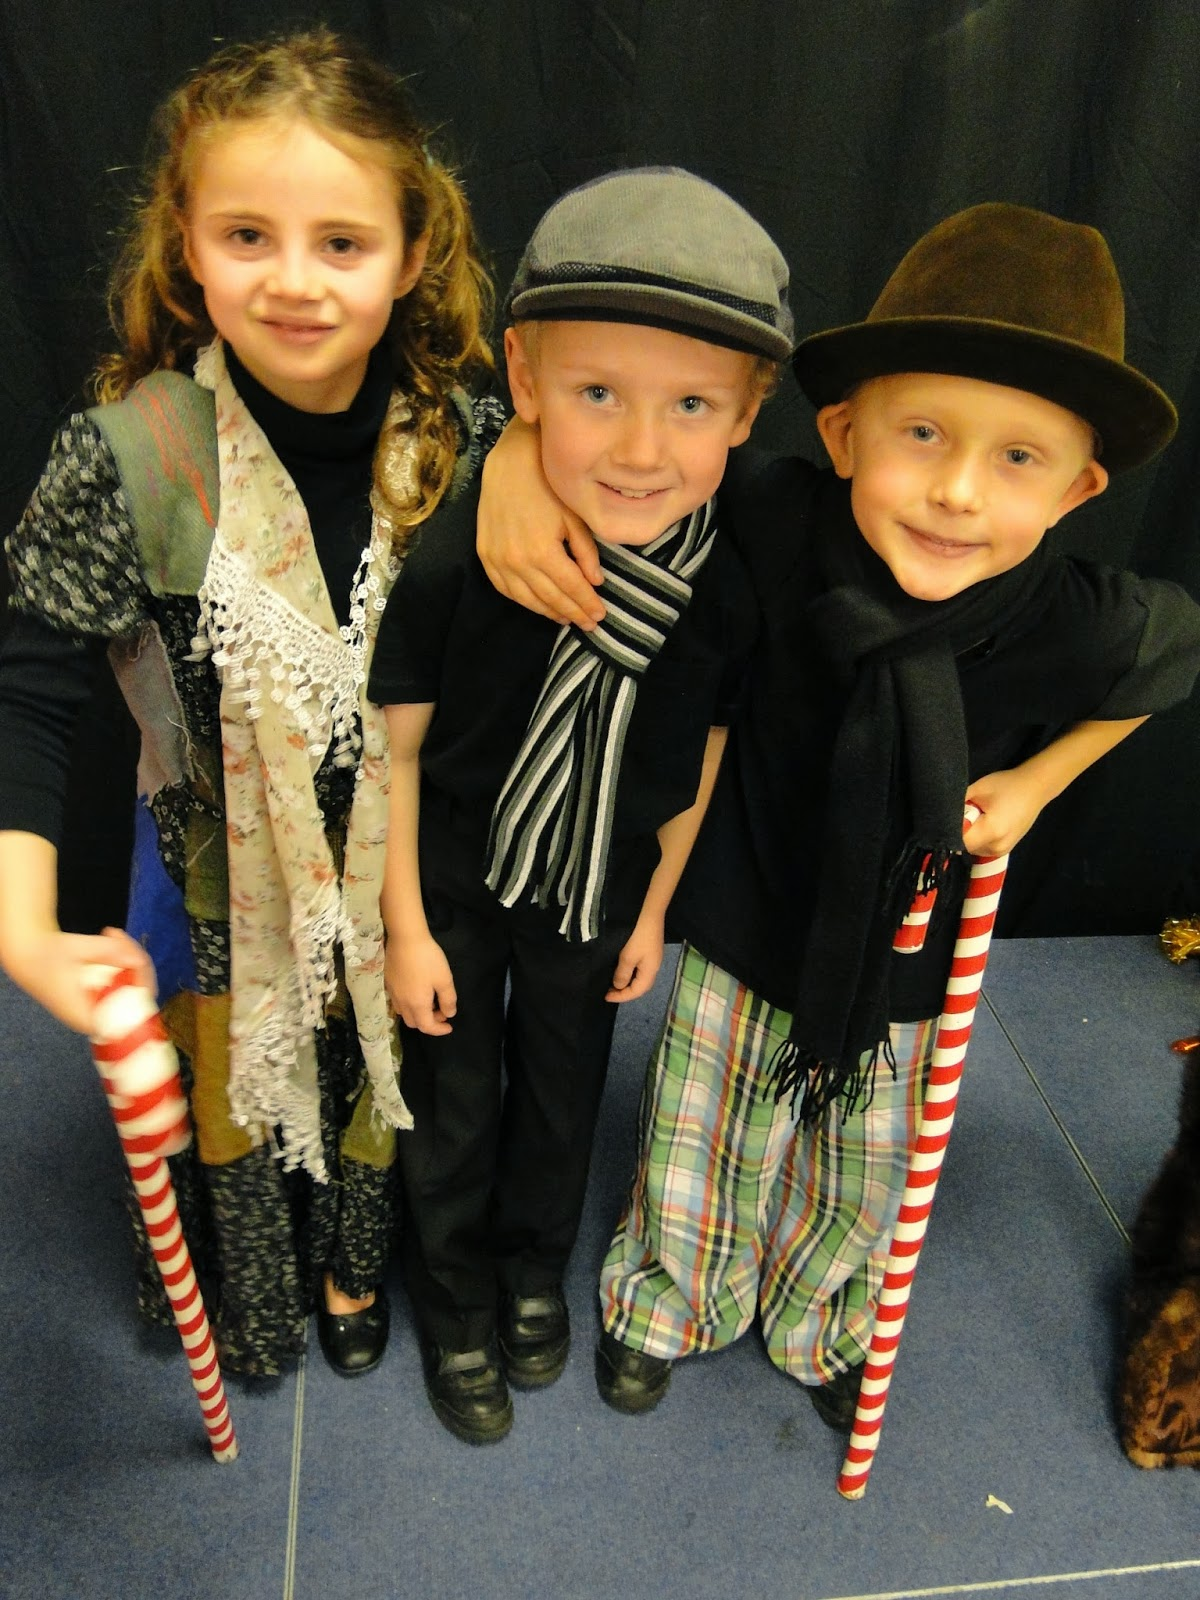 harewood ce primary school web log charlie and the chocolate the bucket family are very poor and undernourished but they are a hard working kind and loving family charlie bucket must walk past